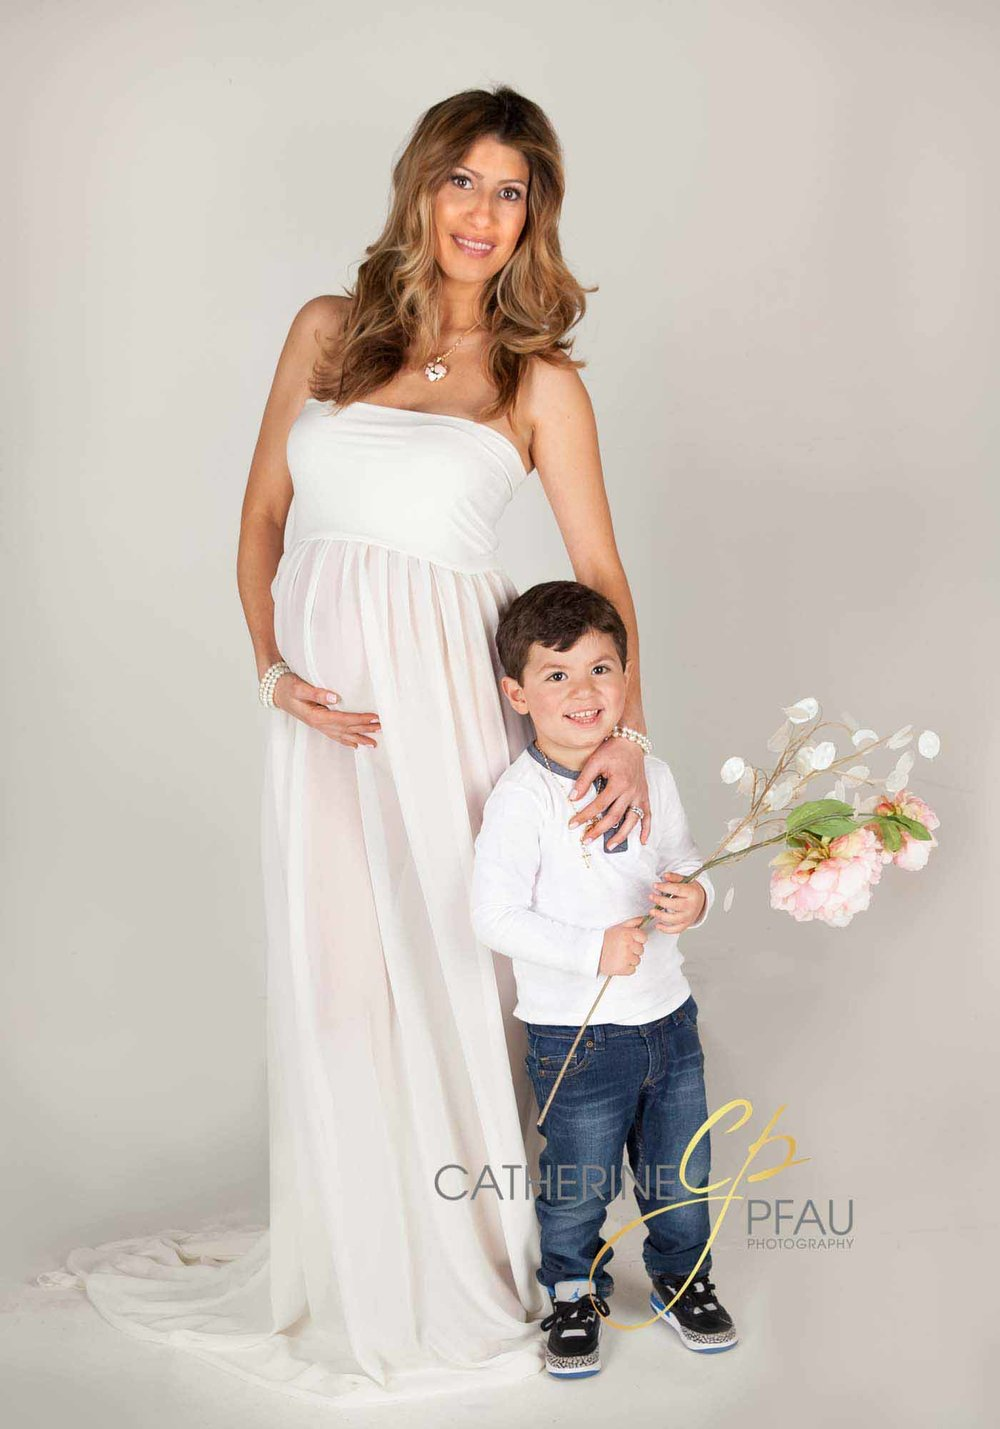 catherinepfauphotography_familyportrait_children_photography-3.jpg